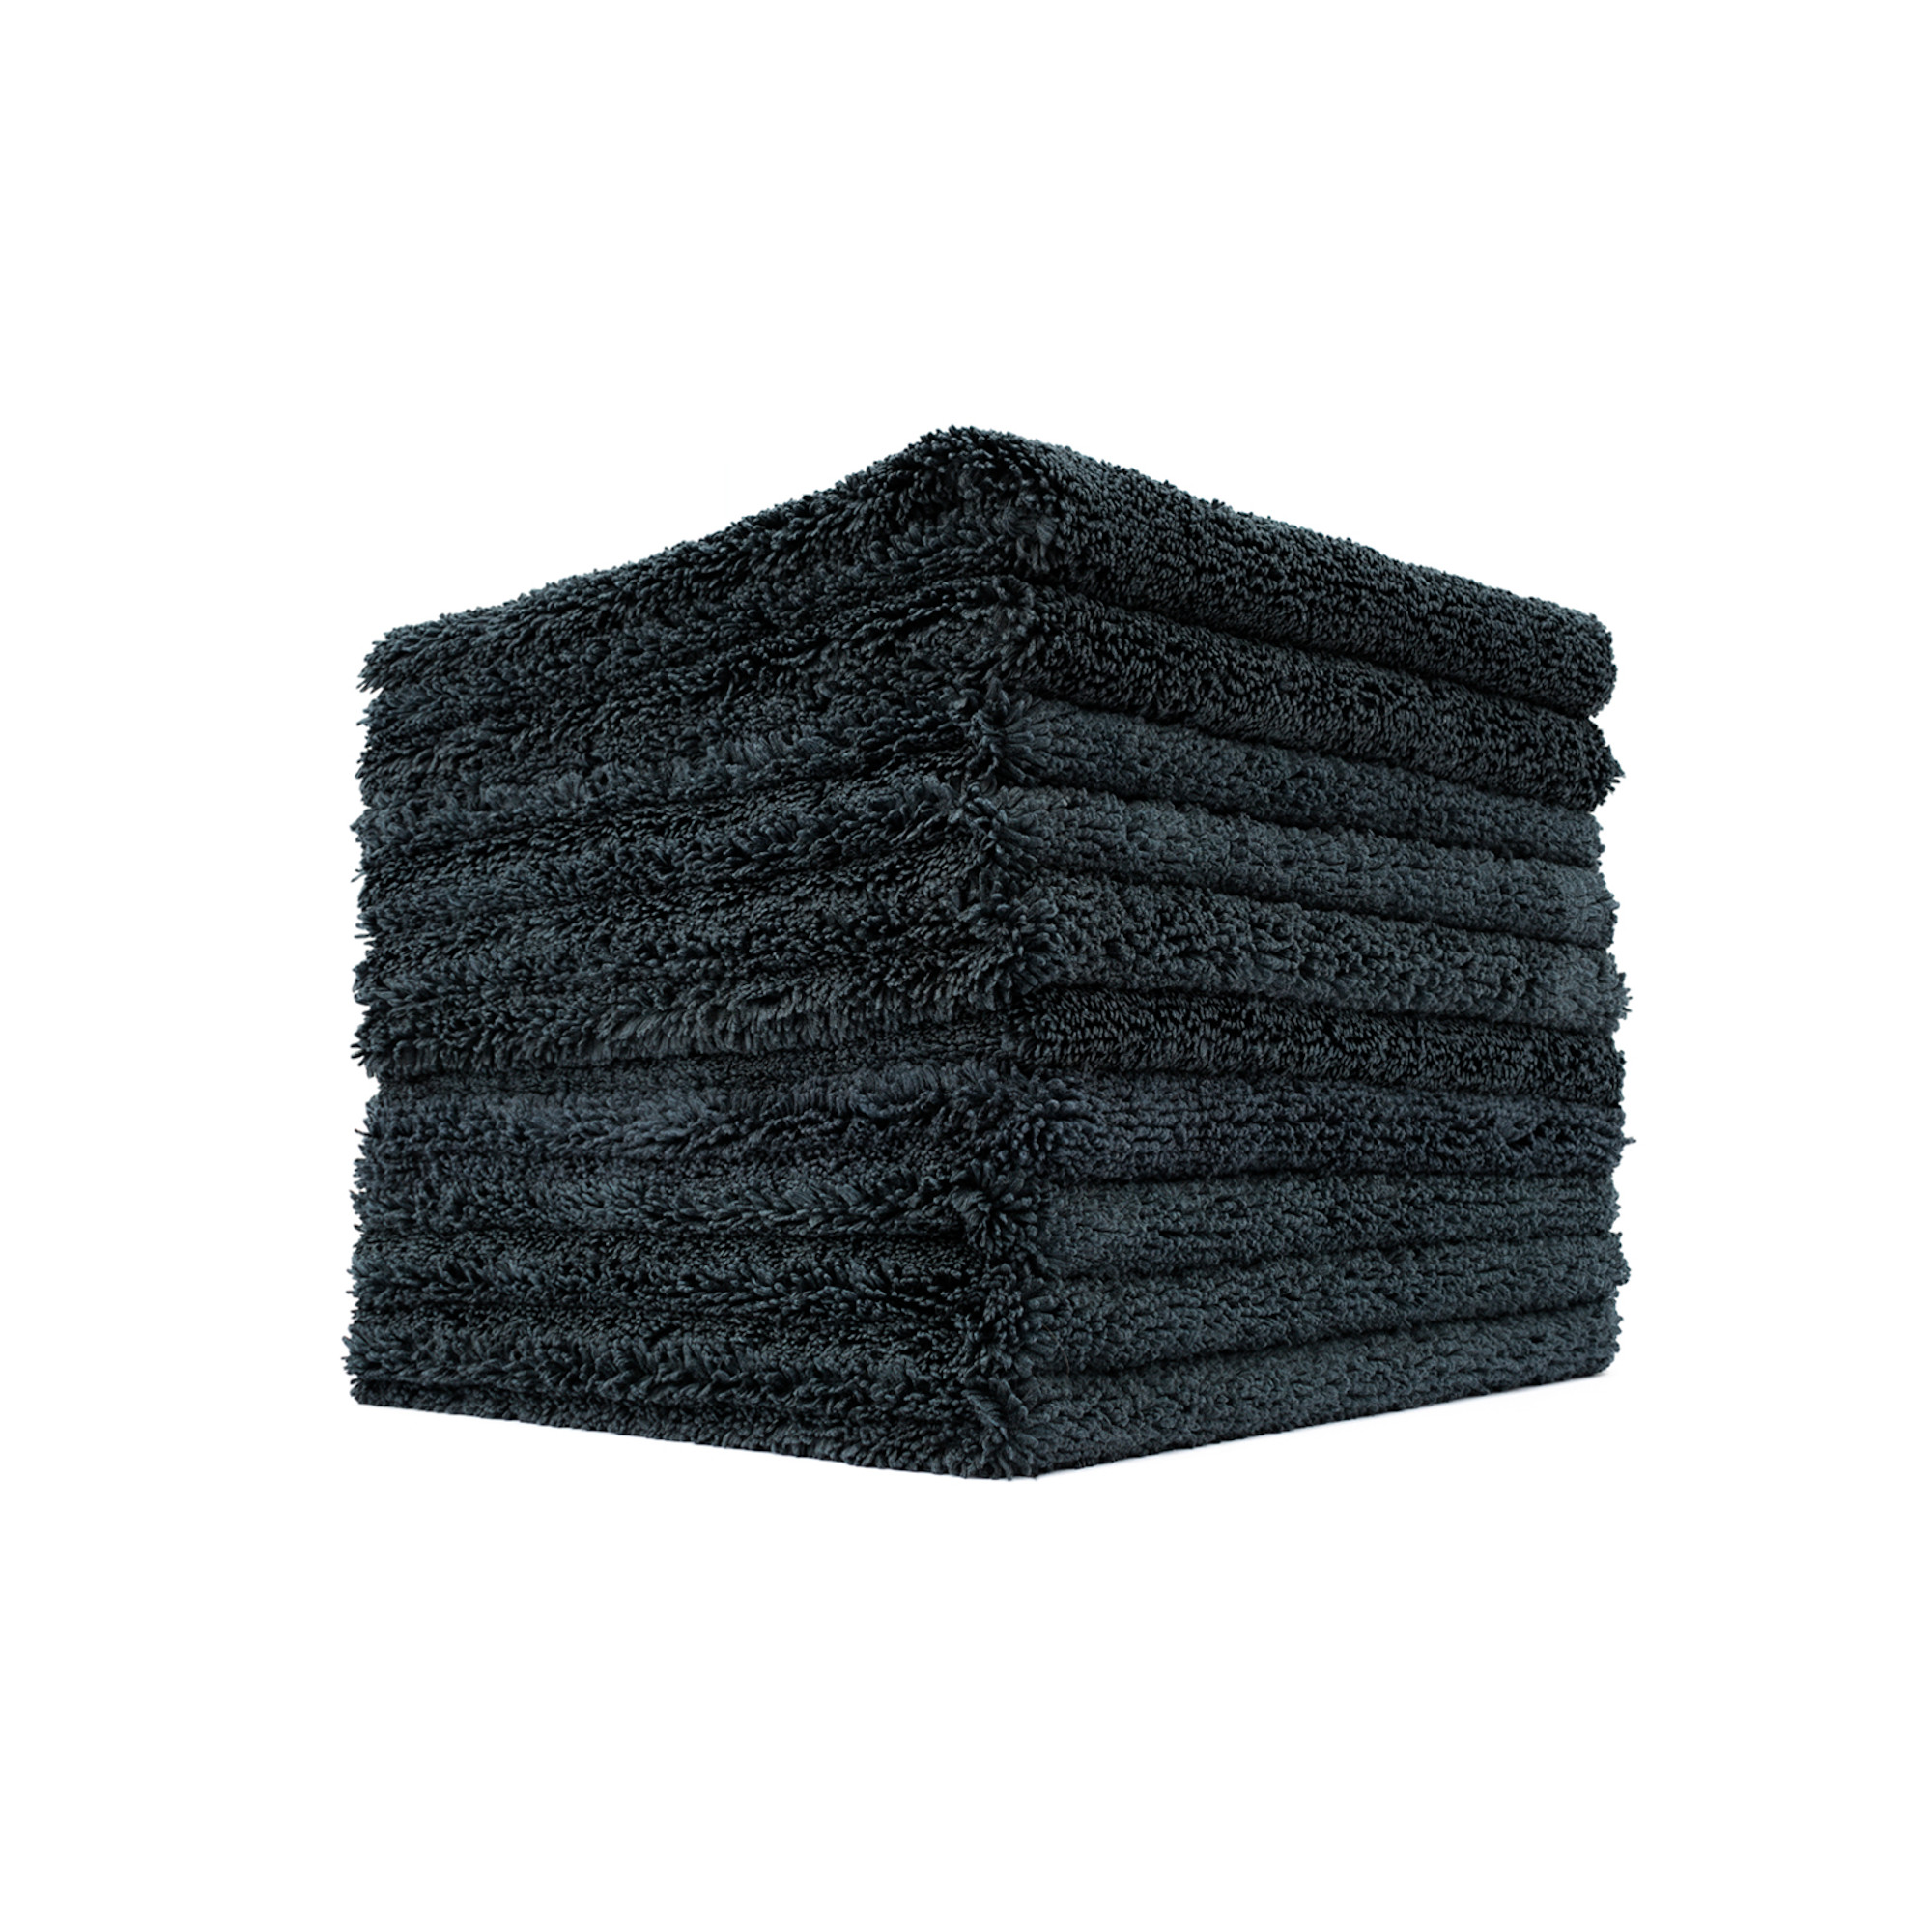 The Rag Company Creature Edgeless Dual Pile (Schwarz)